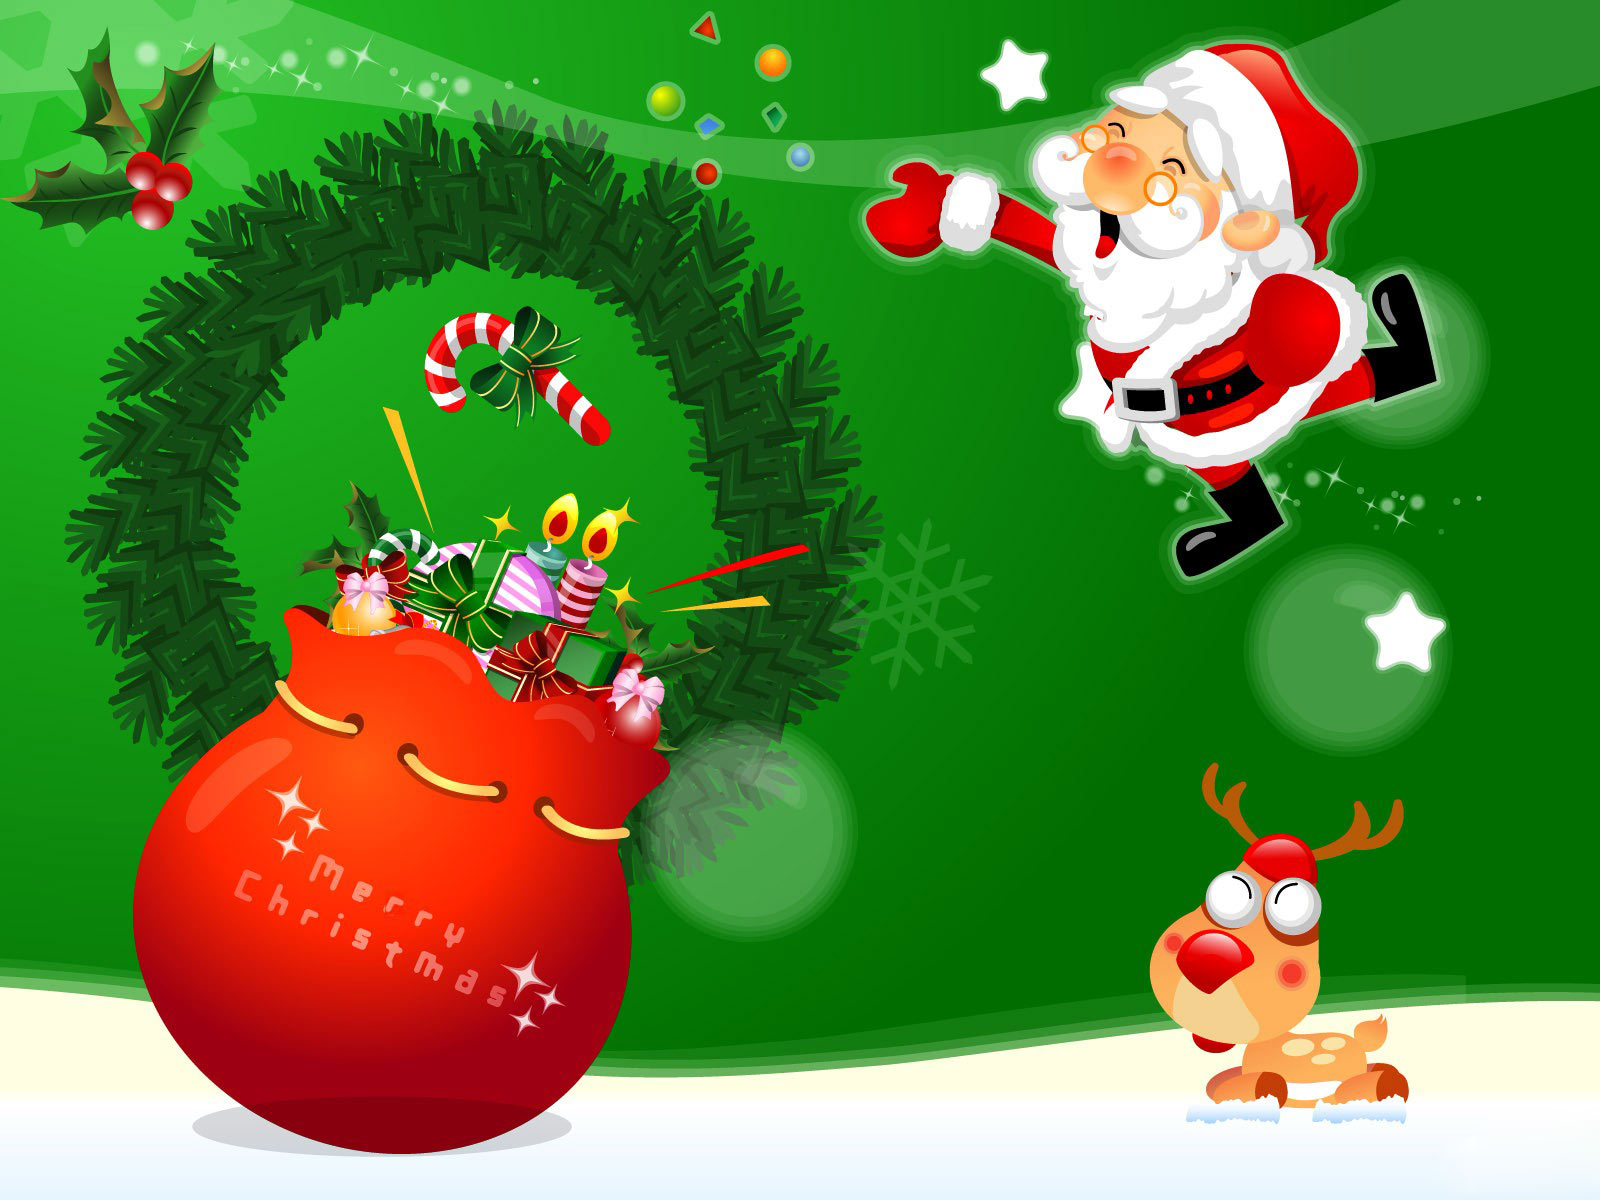 Hot Wallpapers Blog's: 2011 Christmas Wallpapers Free For Desktop